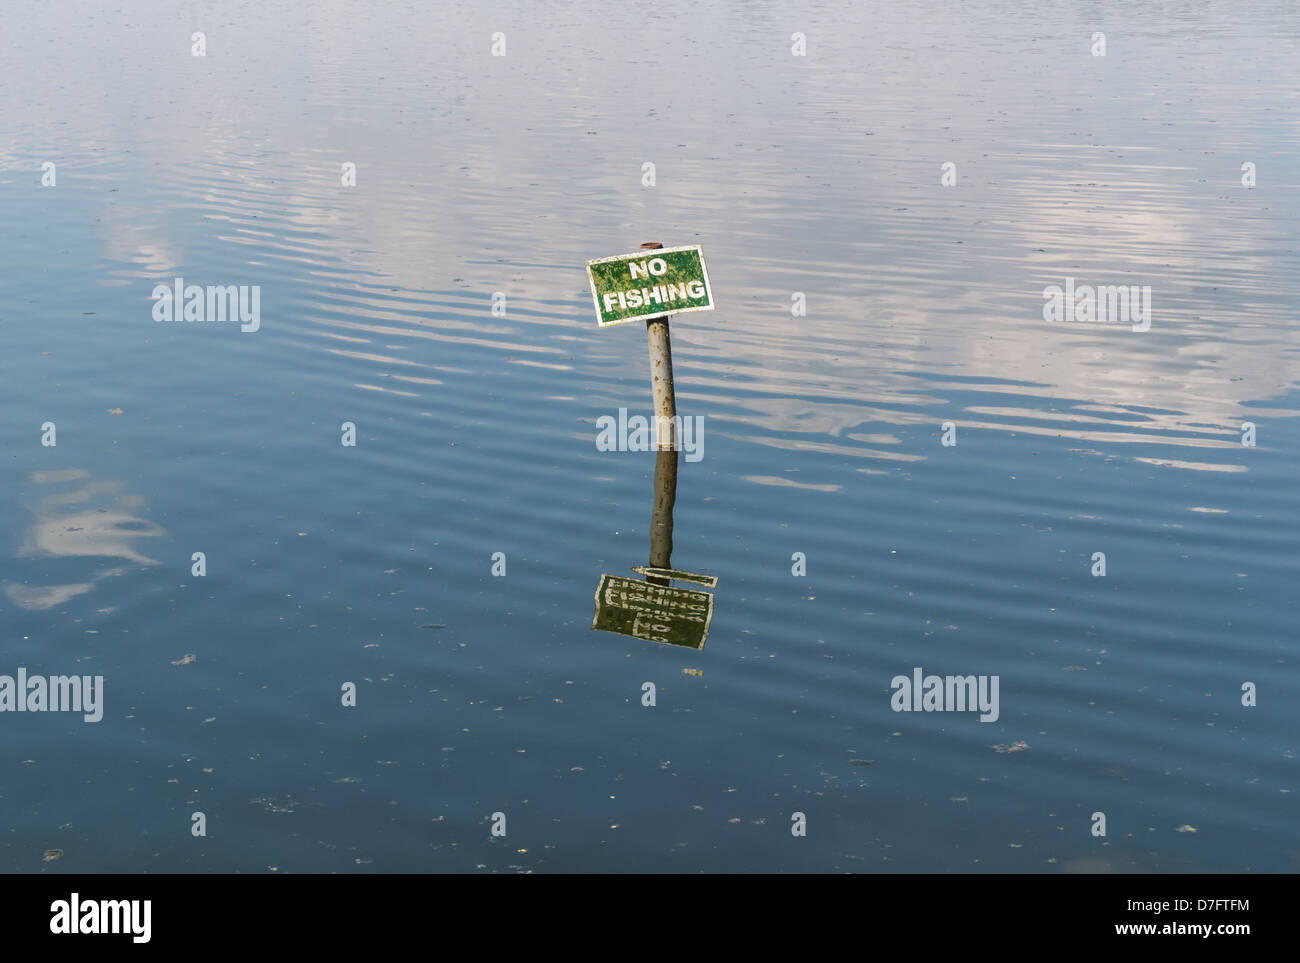 No fishing sign with reflection in dirty water - Stock Image